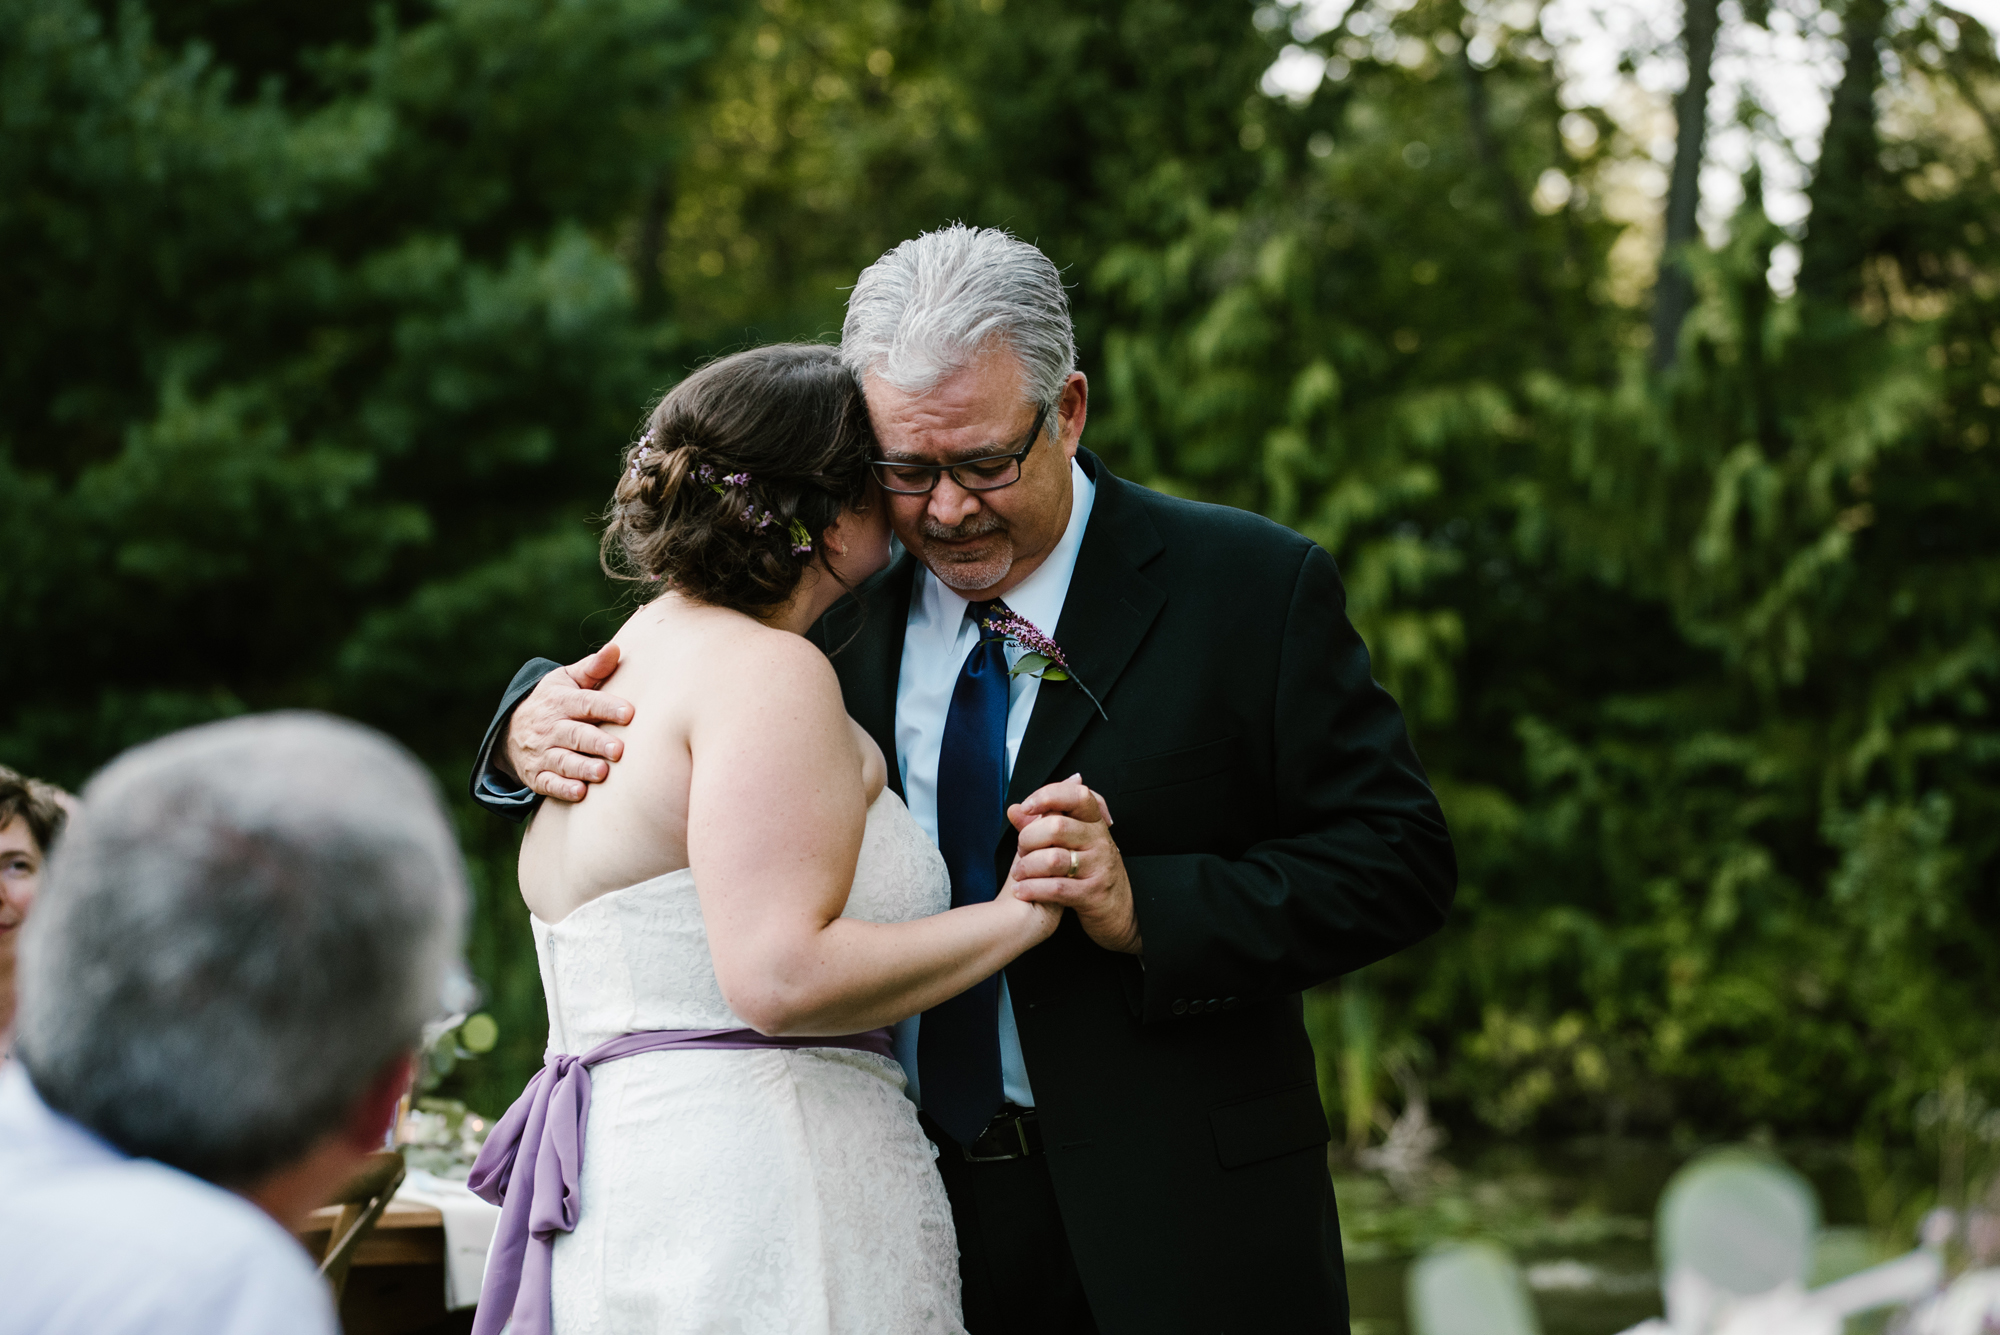 sawyer-michigan-backyard-wedding-dancing-pictures-sydney-marie (5).jpg